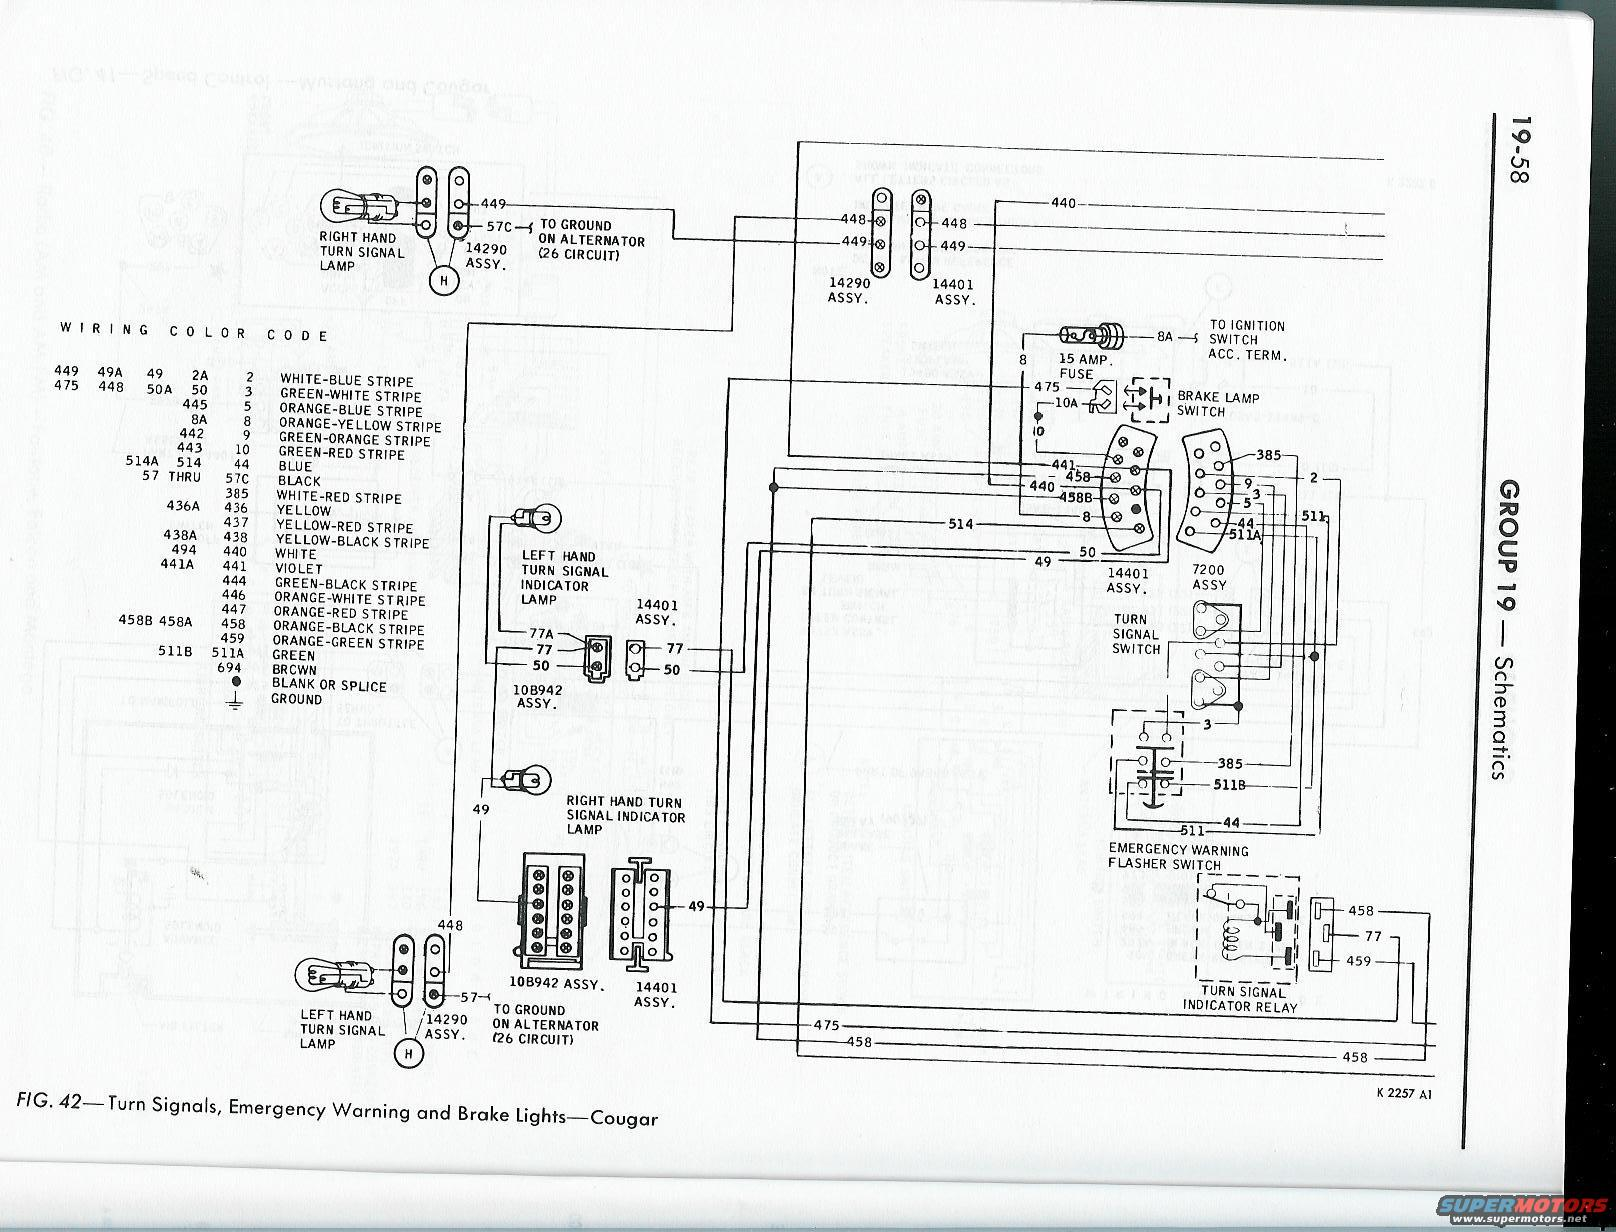 67 mustang alternator wiring diagram 67 discover your wiring 1965 mustang turn signal flasher wiring diagram